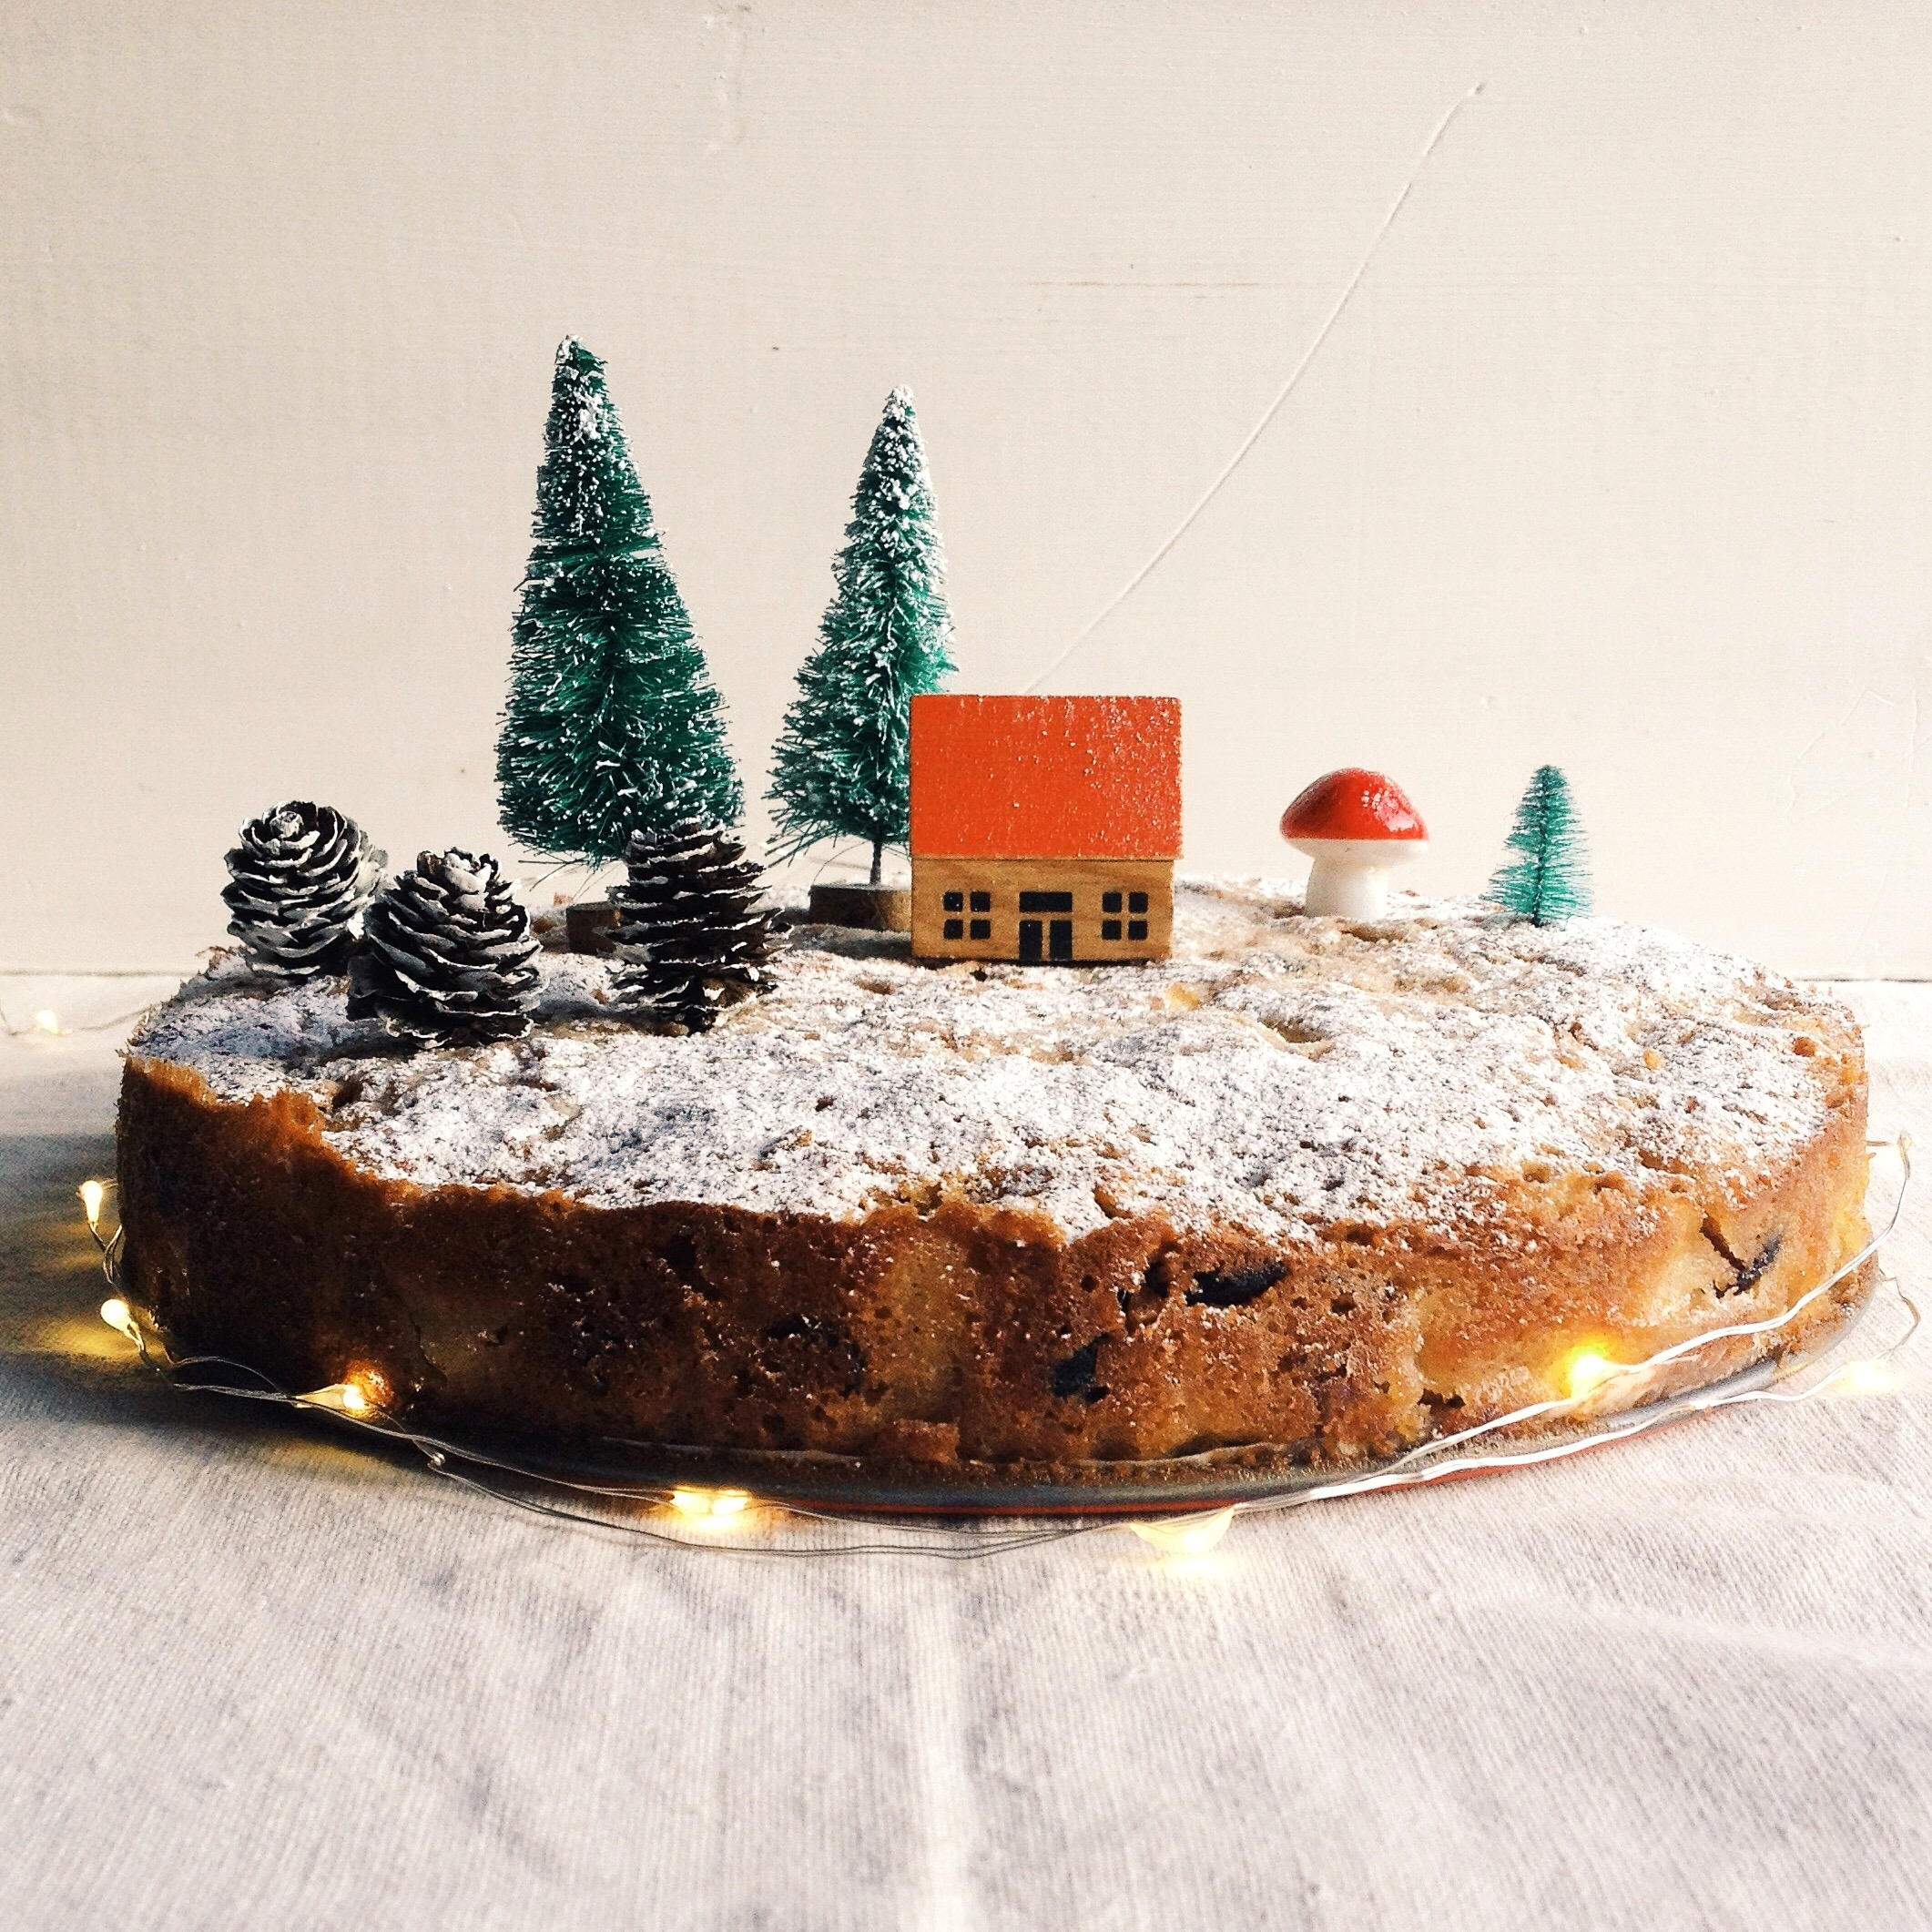 Spiced Apple, Cranberry and Almond Christmas Cake